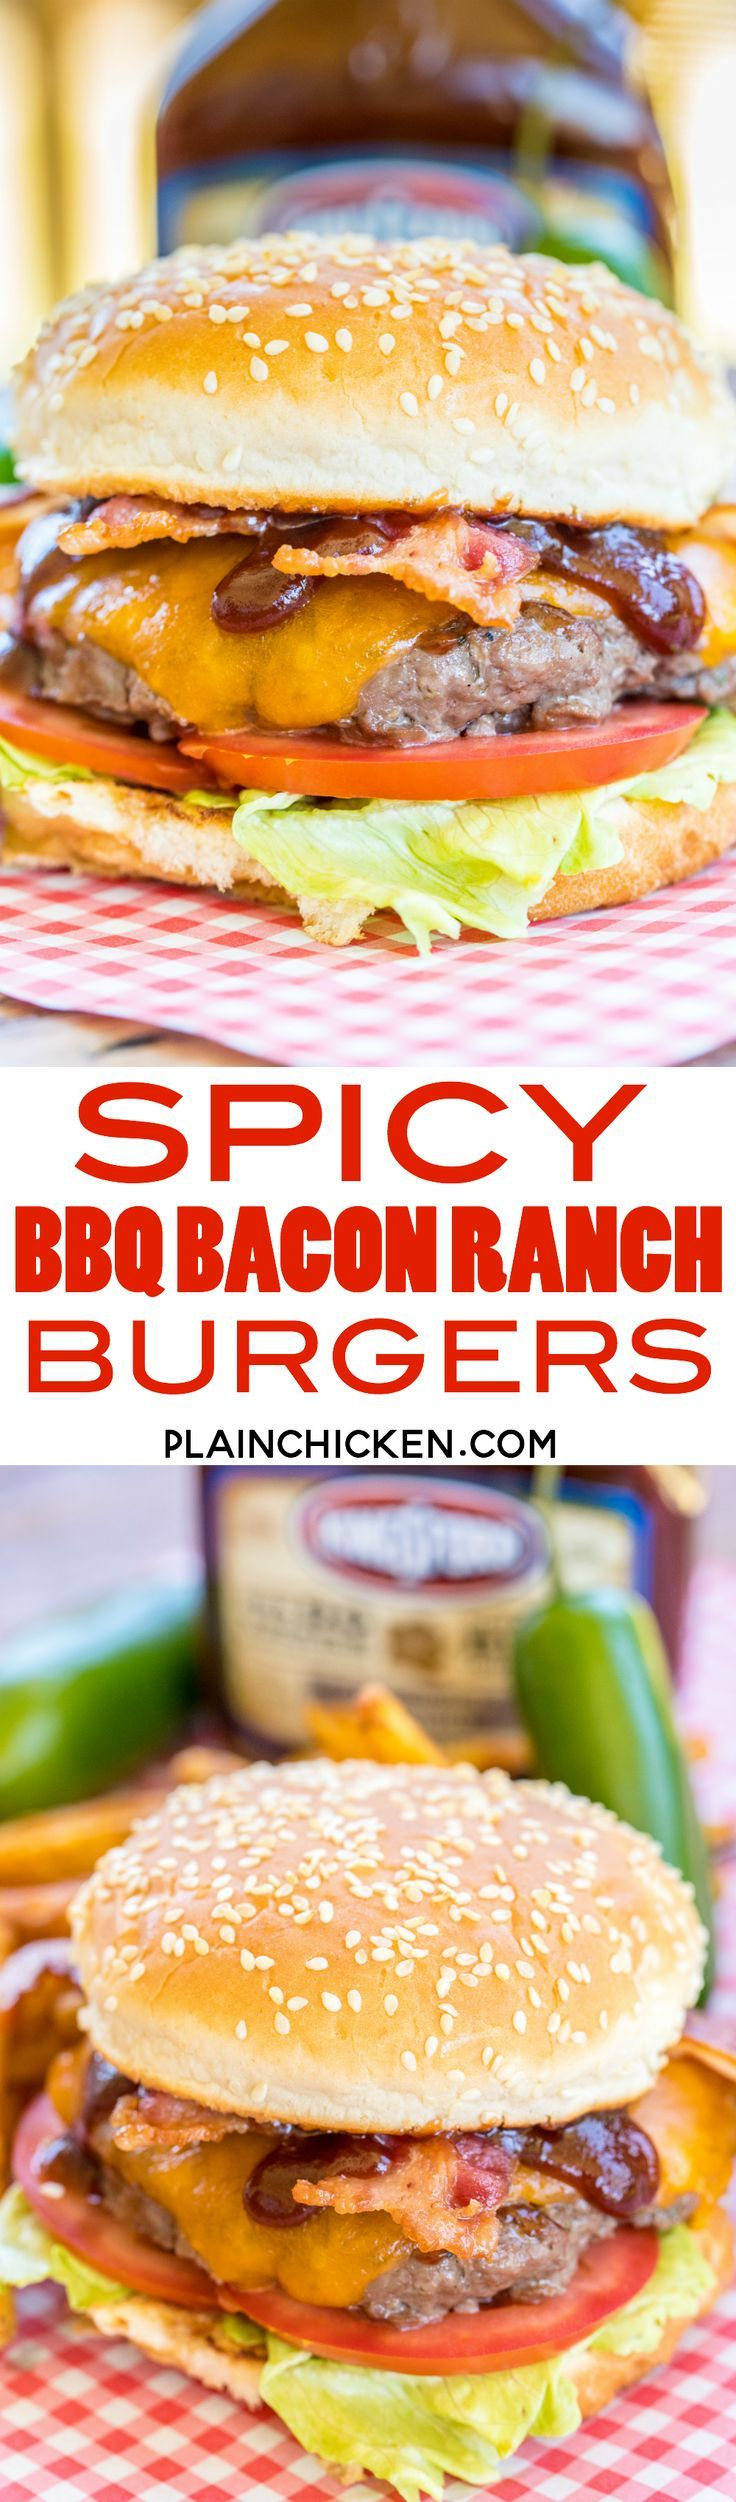 Spicy BBQ Ranch Burgers - seriously delicious! SO easy and they taste AMAZING!!! We grilled these for a party and everyone RAVED about them!! Ground Beef, Ranch mix, cheddar cheese, lettuce, tomato, bacon and Kingsford Honey Jalape�o Mesquite BBQ Sauce.